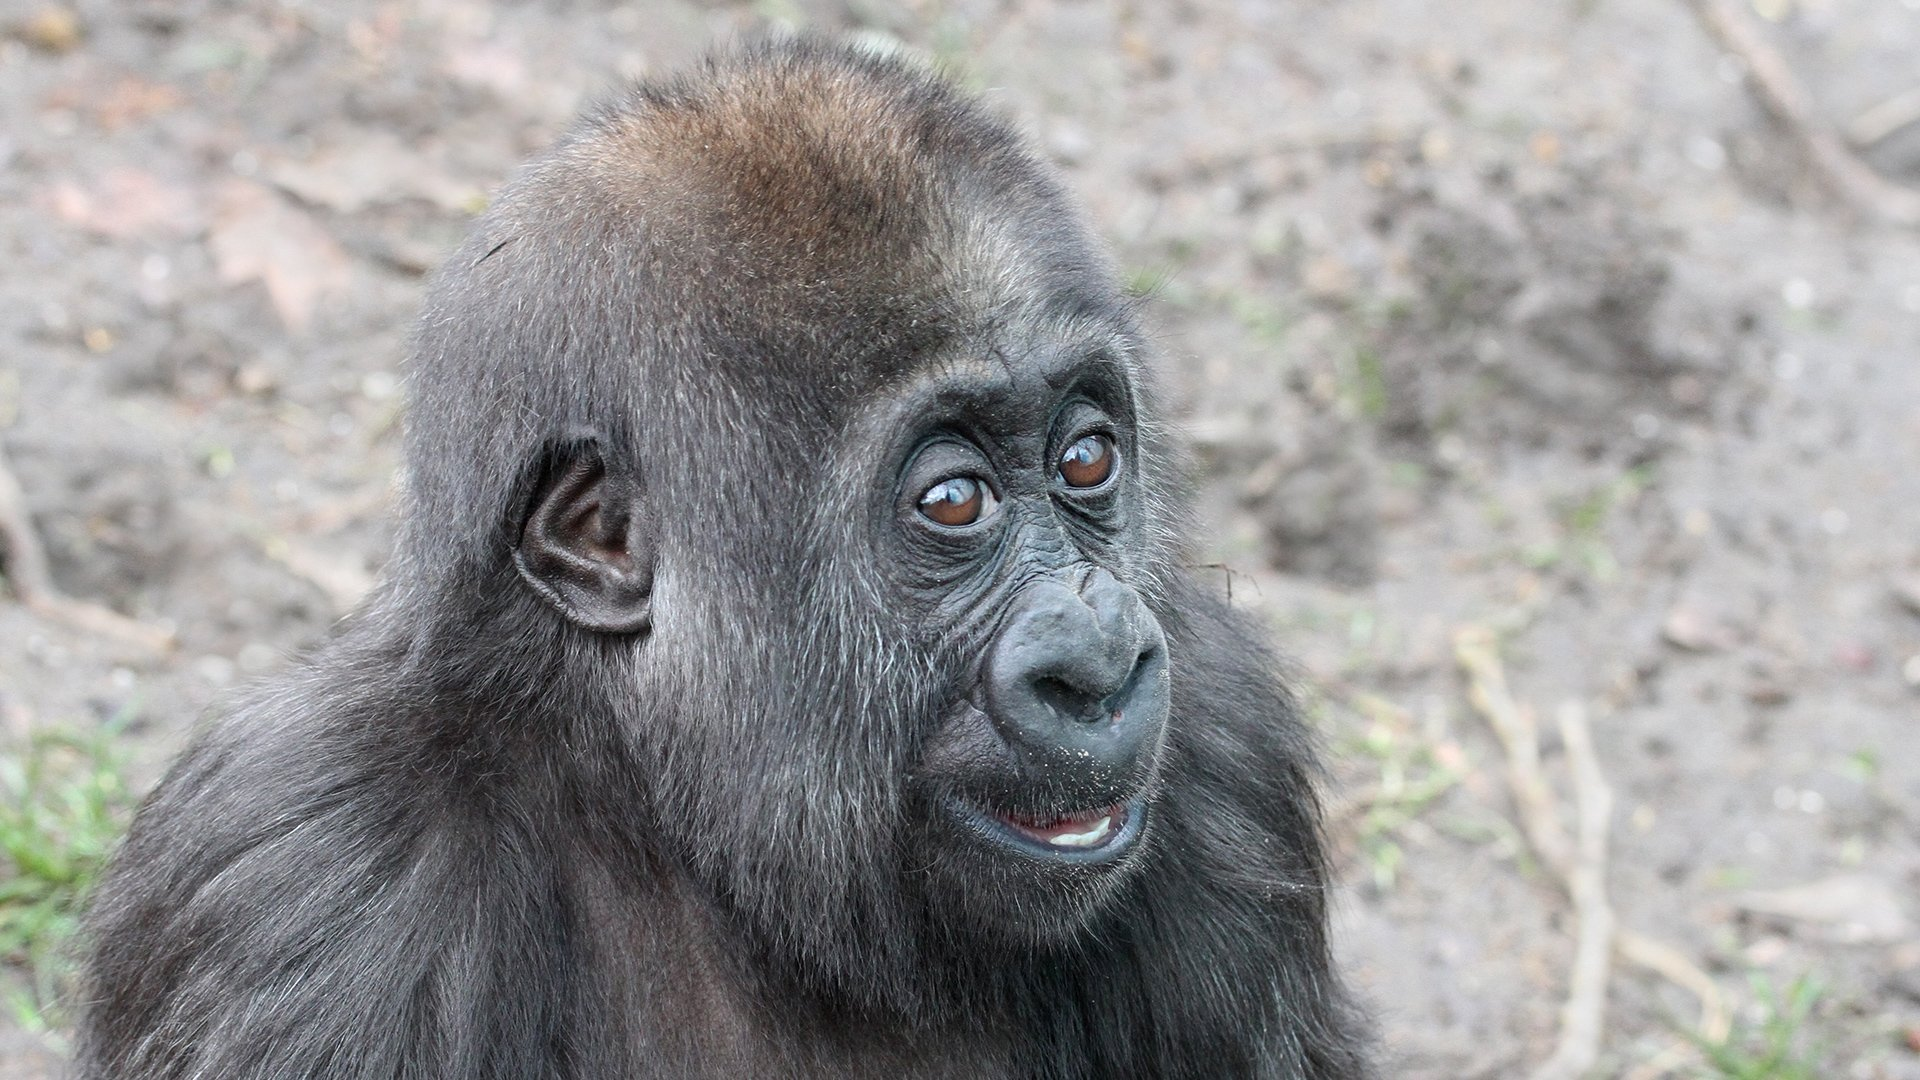 Yanga jan 2018_gorillababy_1920x1080.jpg